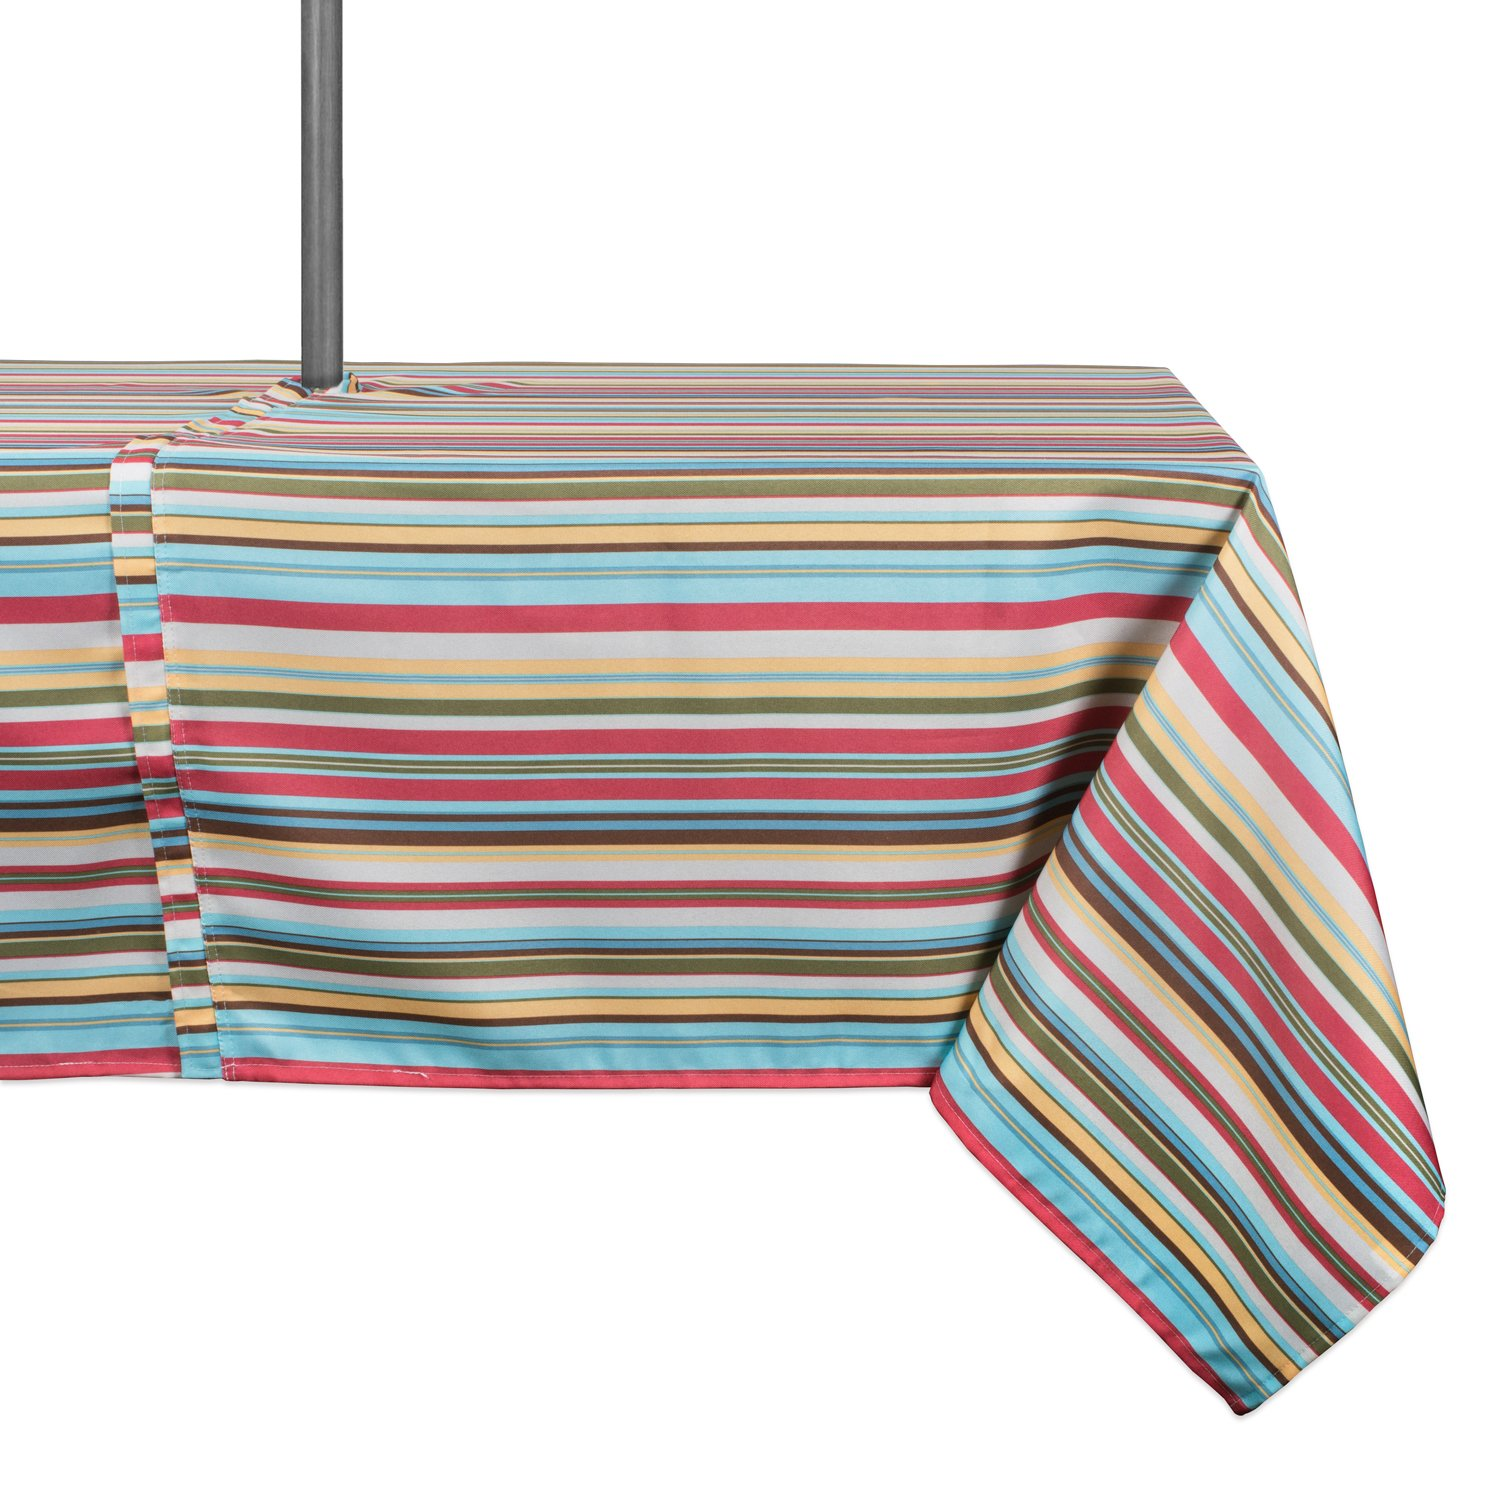 DII Spring & Summer Outdoor Tablecloth, Spill Proof and Waterproof with Zipper and Umbrella Hole, Host Backyard Parties, BBQs, & Family Gatherings - (60x84'' - Seats 6 to 8) Warm Summer Stripe